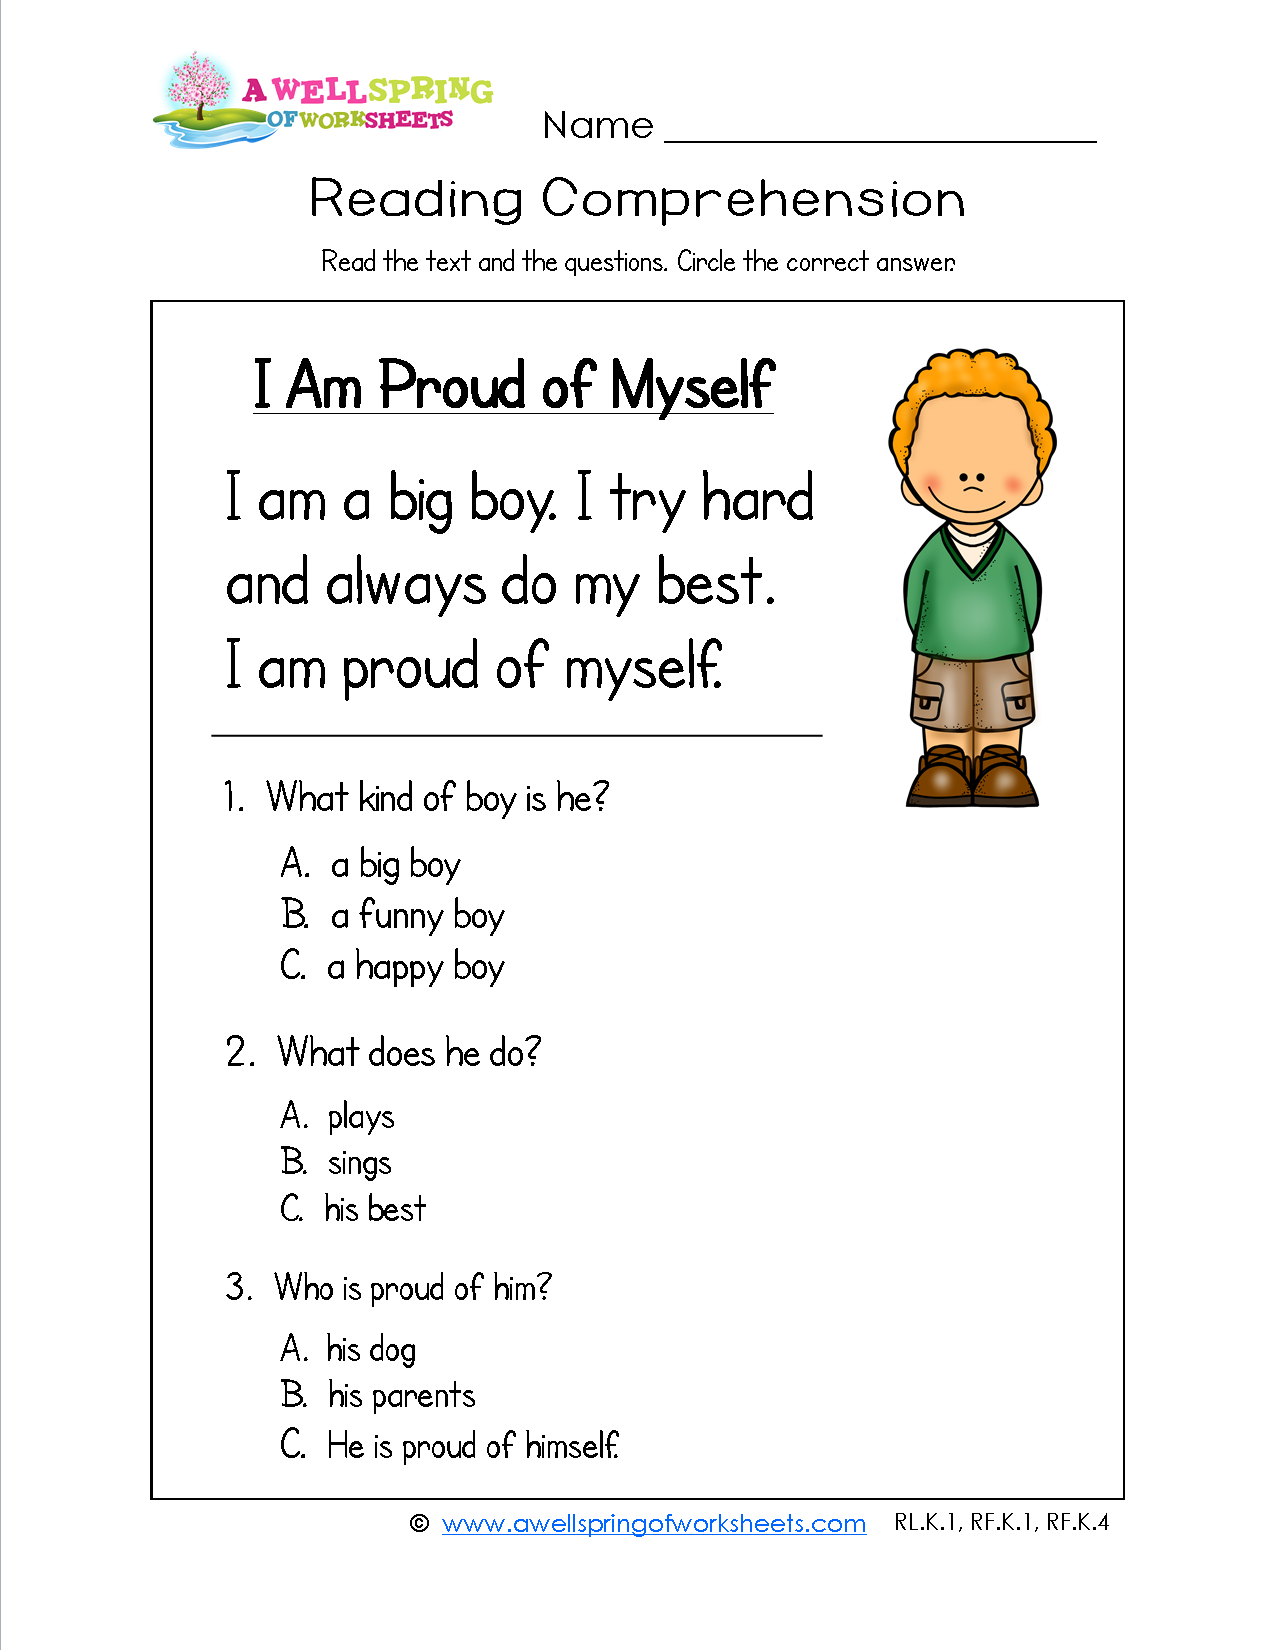 worksheet Myself Worksheet For Kindergarten grade level worksheets guided reading levels passages and every kid needs to feel proud of themselves this kindergarten comprehension worksheet reinforces that